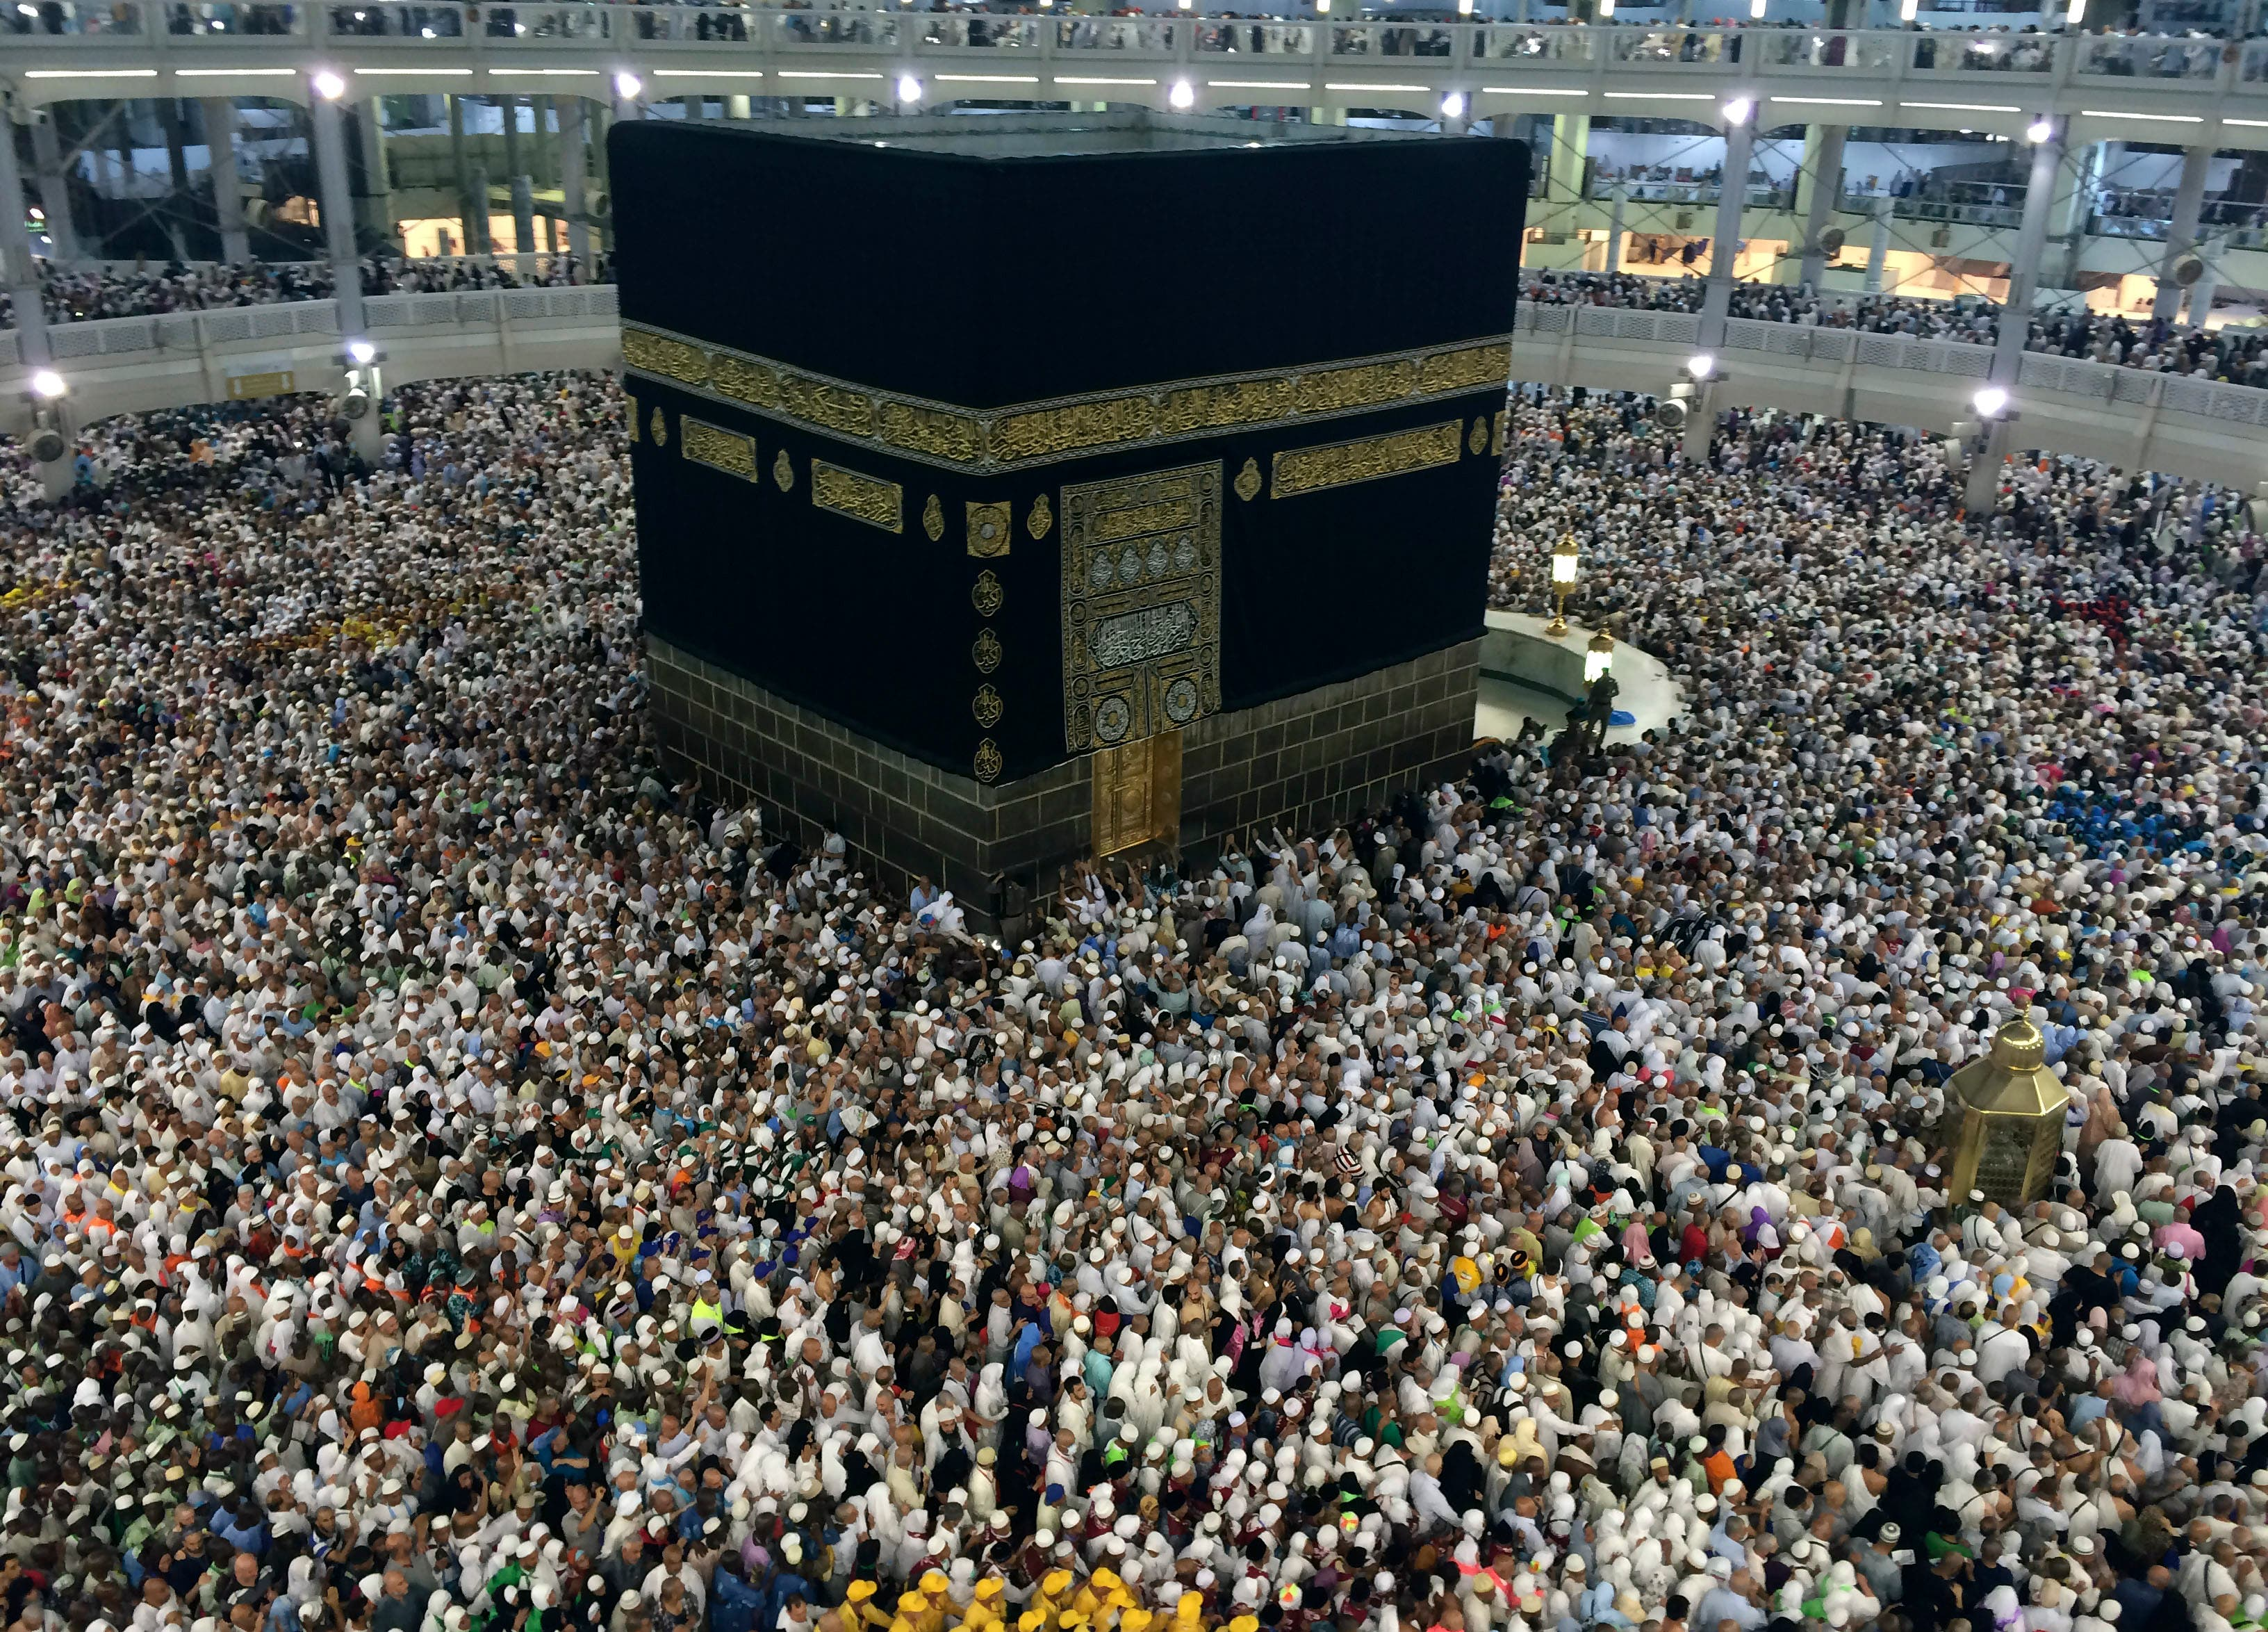 Muslim pilgrims circle the Kaaba, the black cube at center, inside the Grand Mosque during the annual pilgrimage, known as the hajj, in the Muslim holy city of Mecca, Saudi Arabia AP